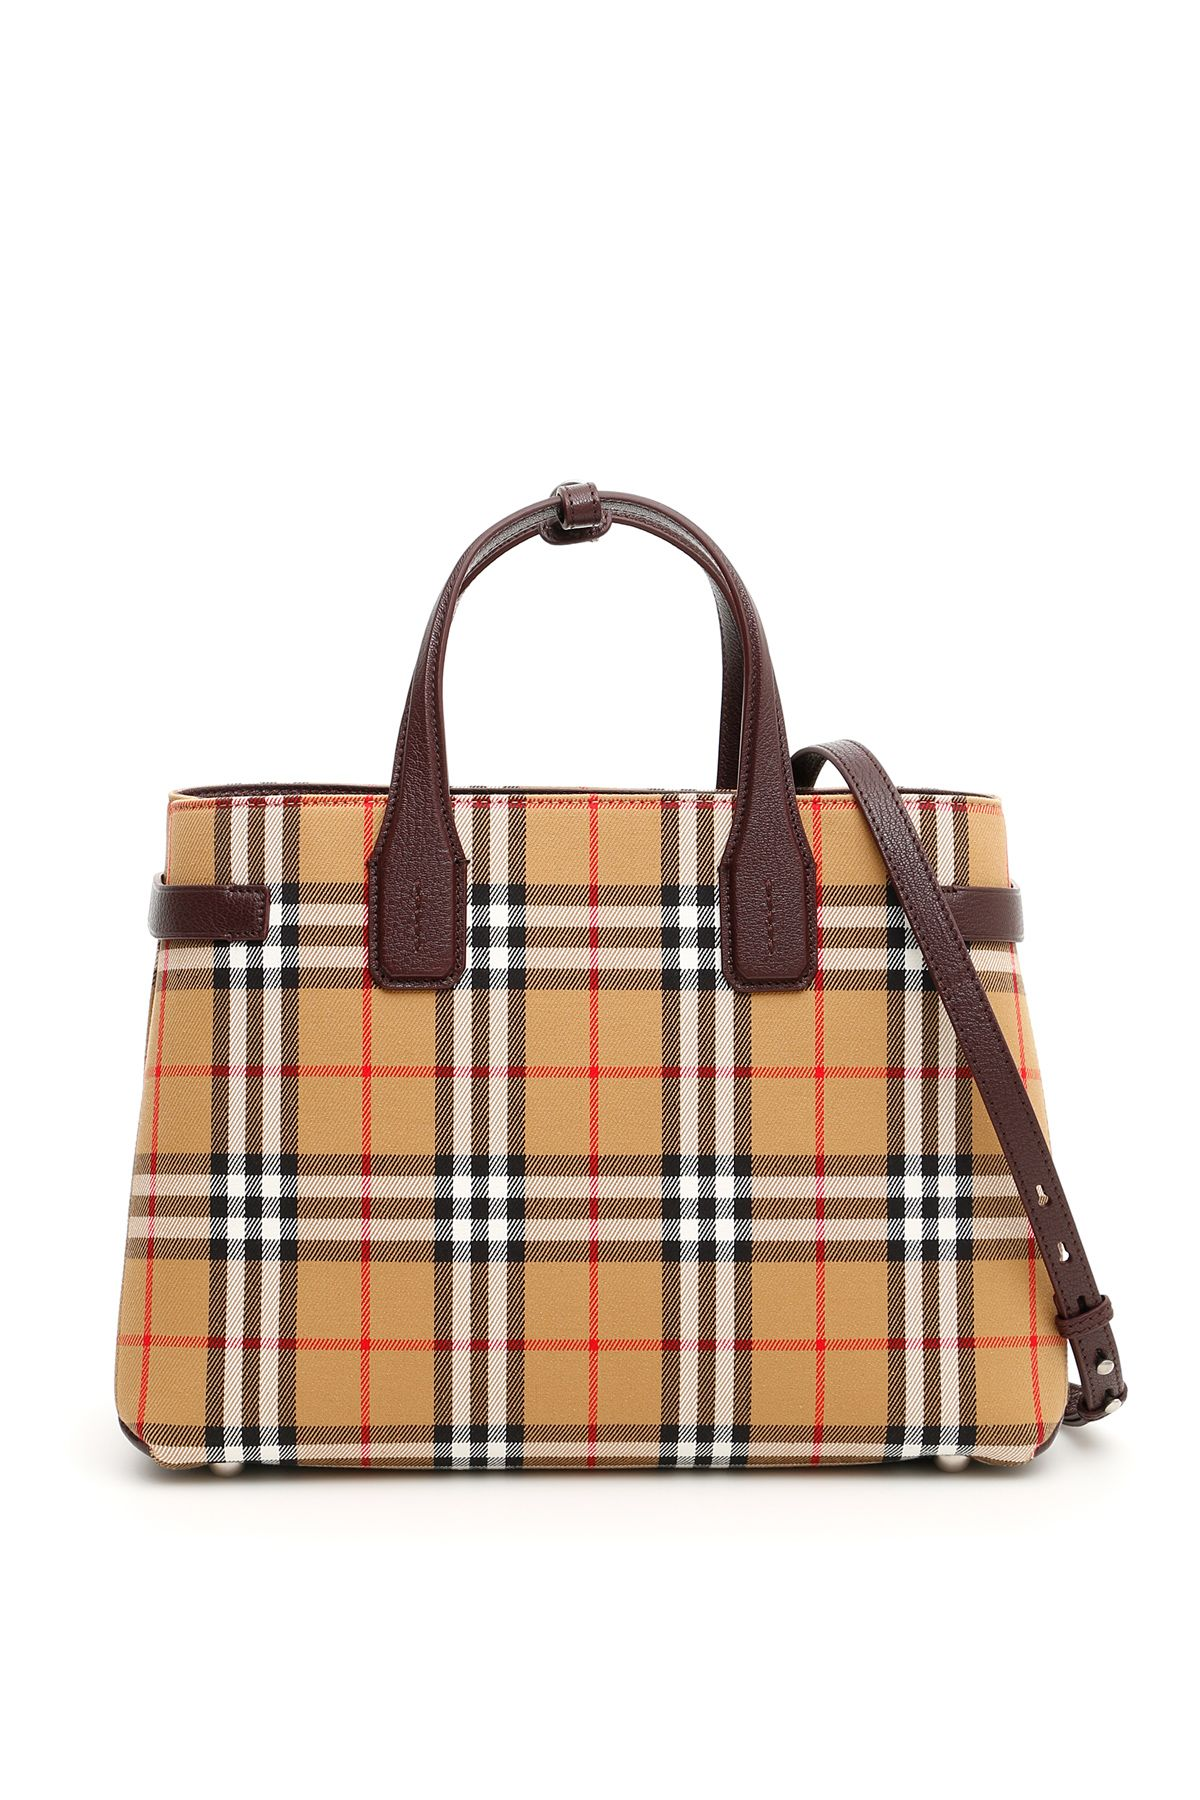 Baby Banner Vintage Check Leather Satchel